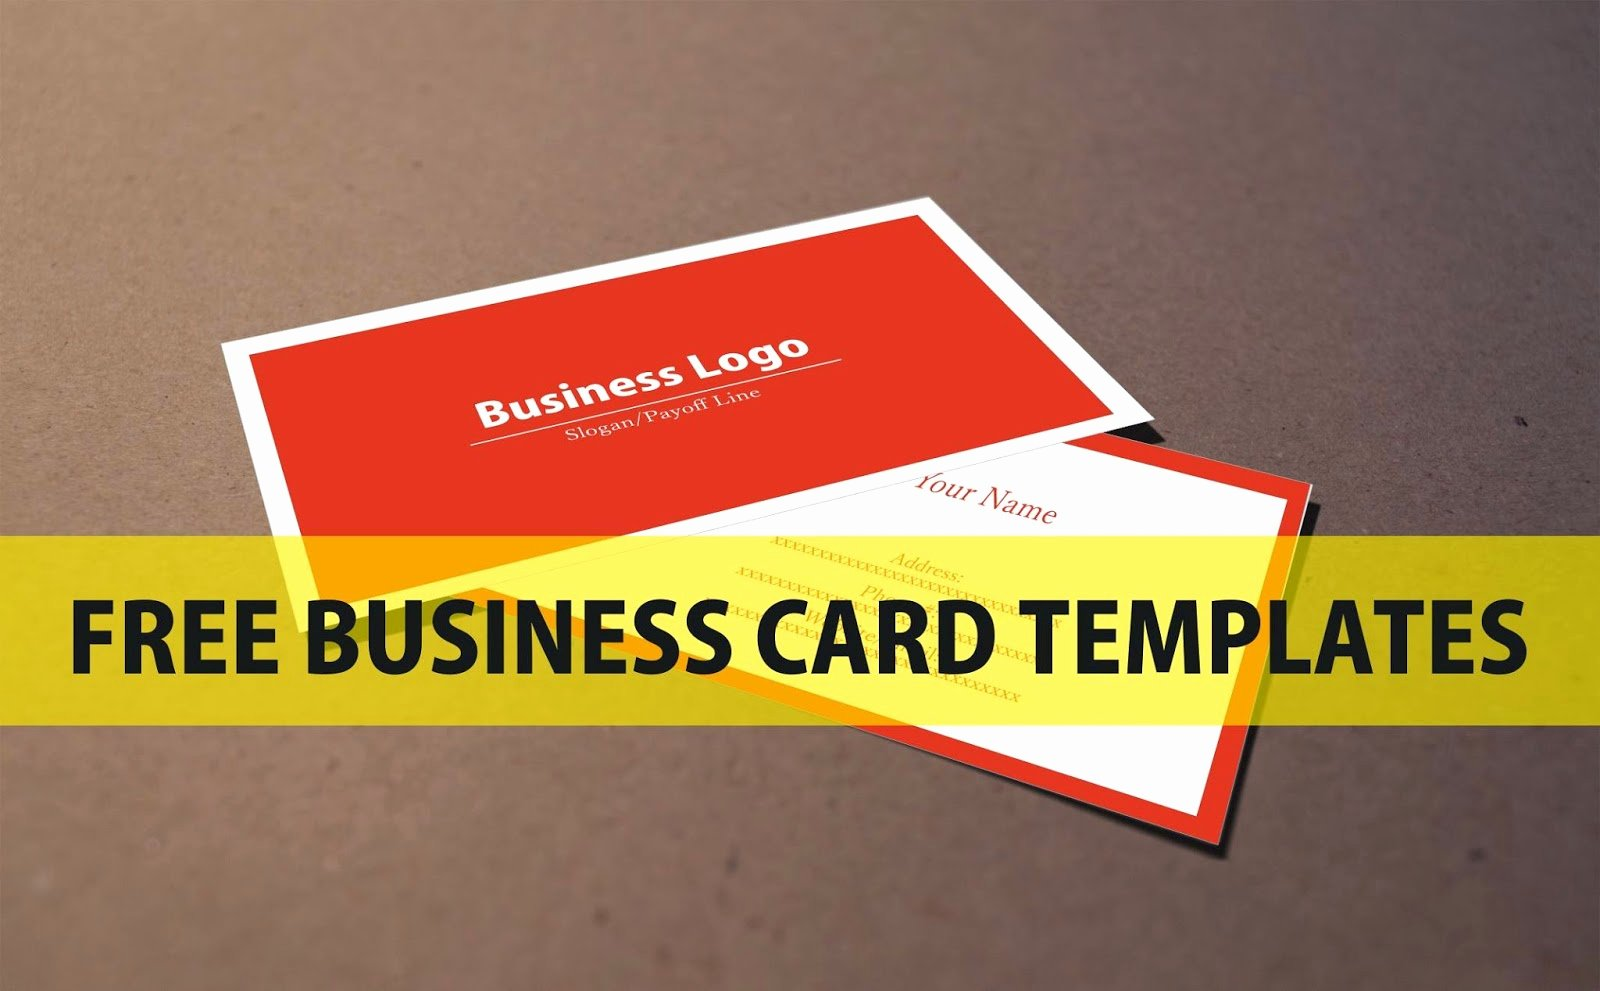 Sample Business Card Template Unique Free Business Card Template